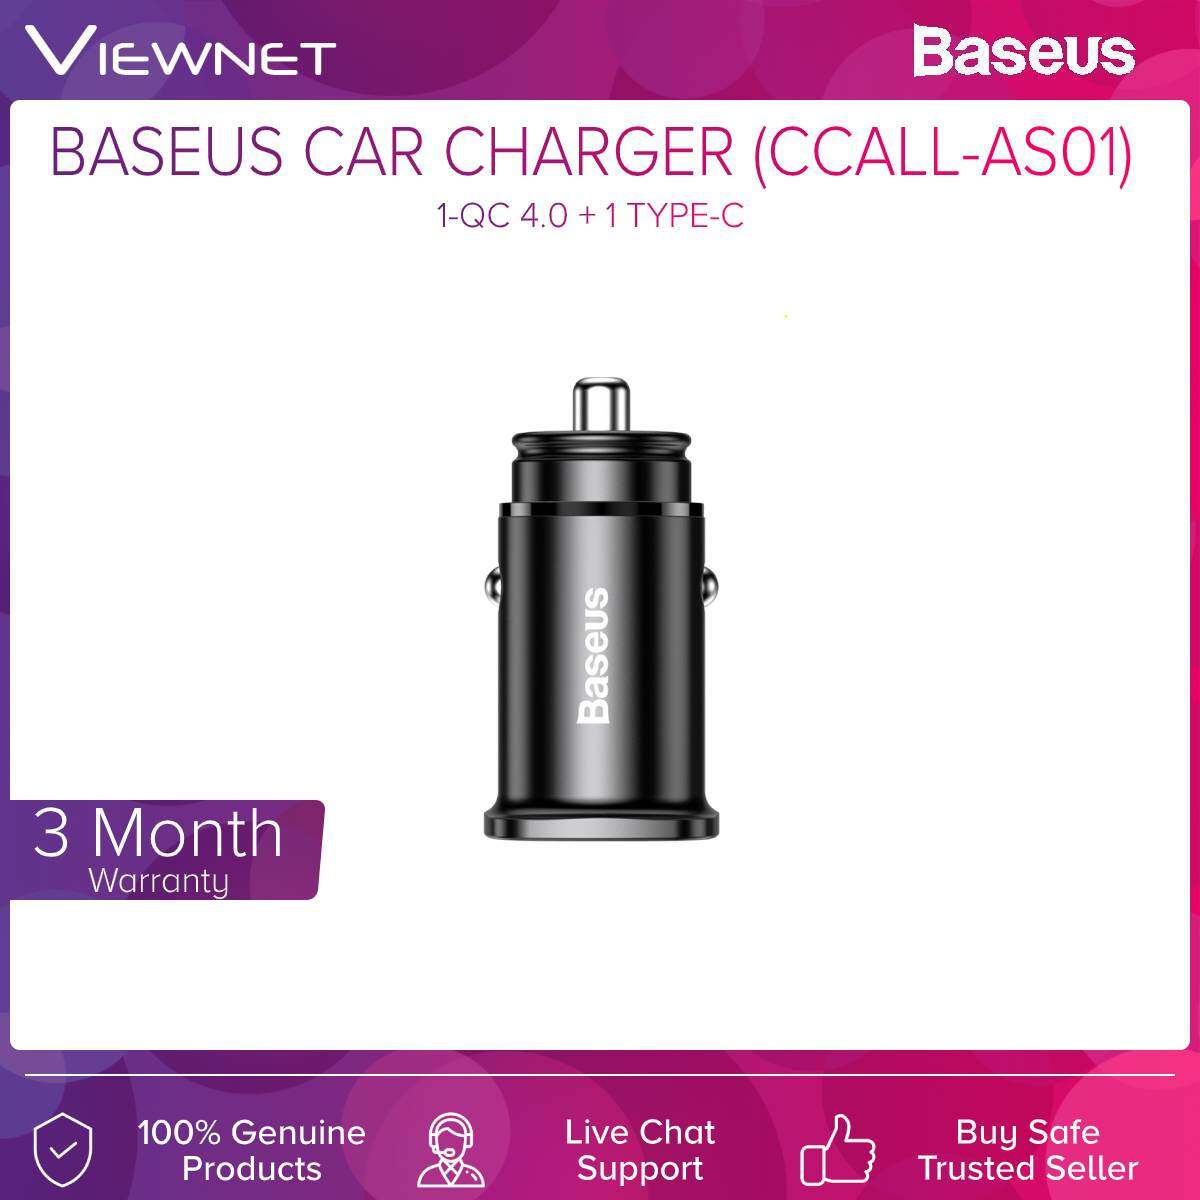 Baseus (CCALL-AS01) Car Charger In-Car 1-QC4.0 + 1-Type-c